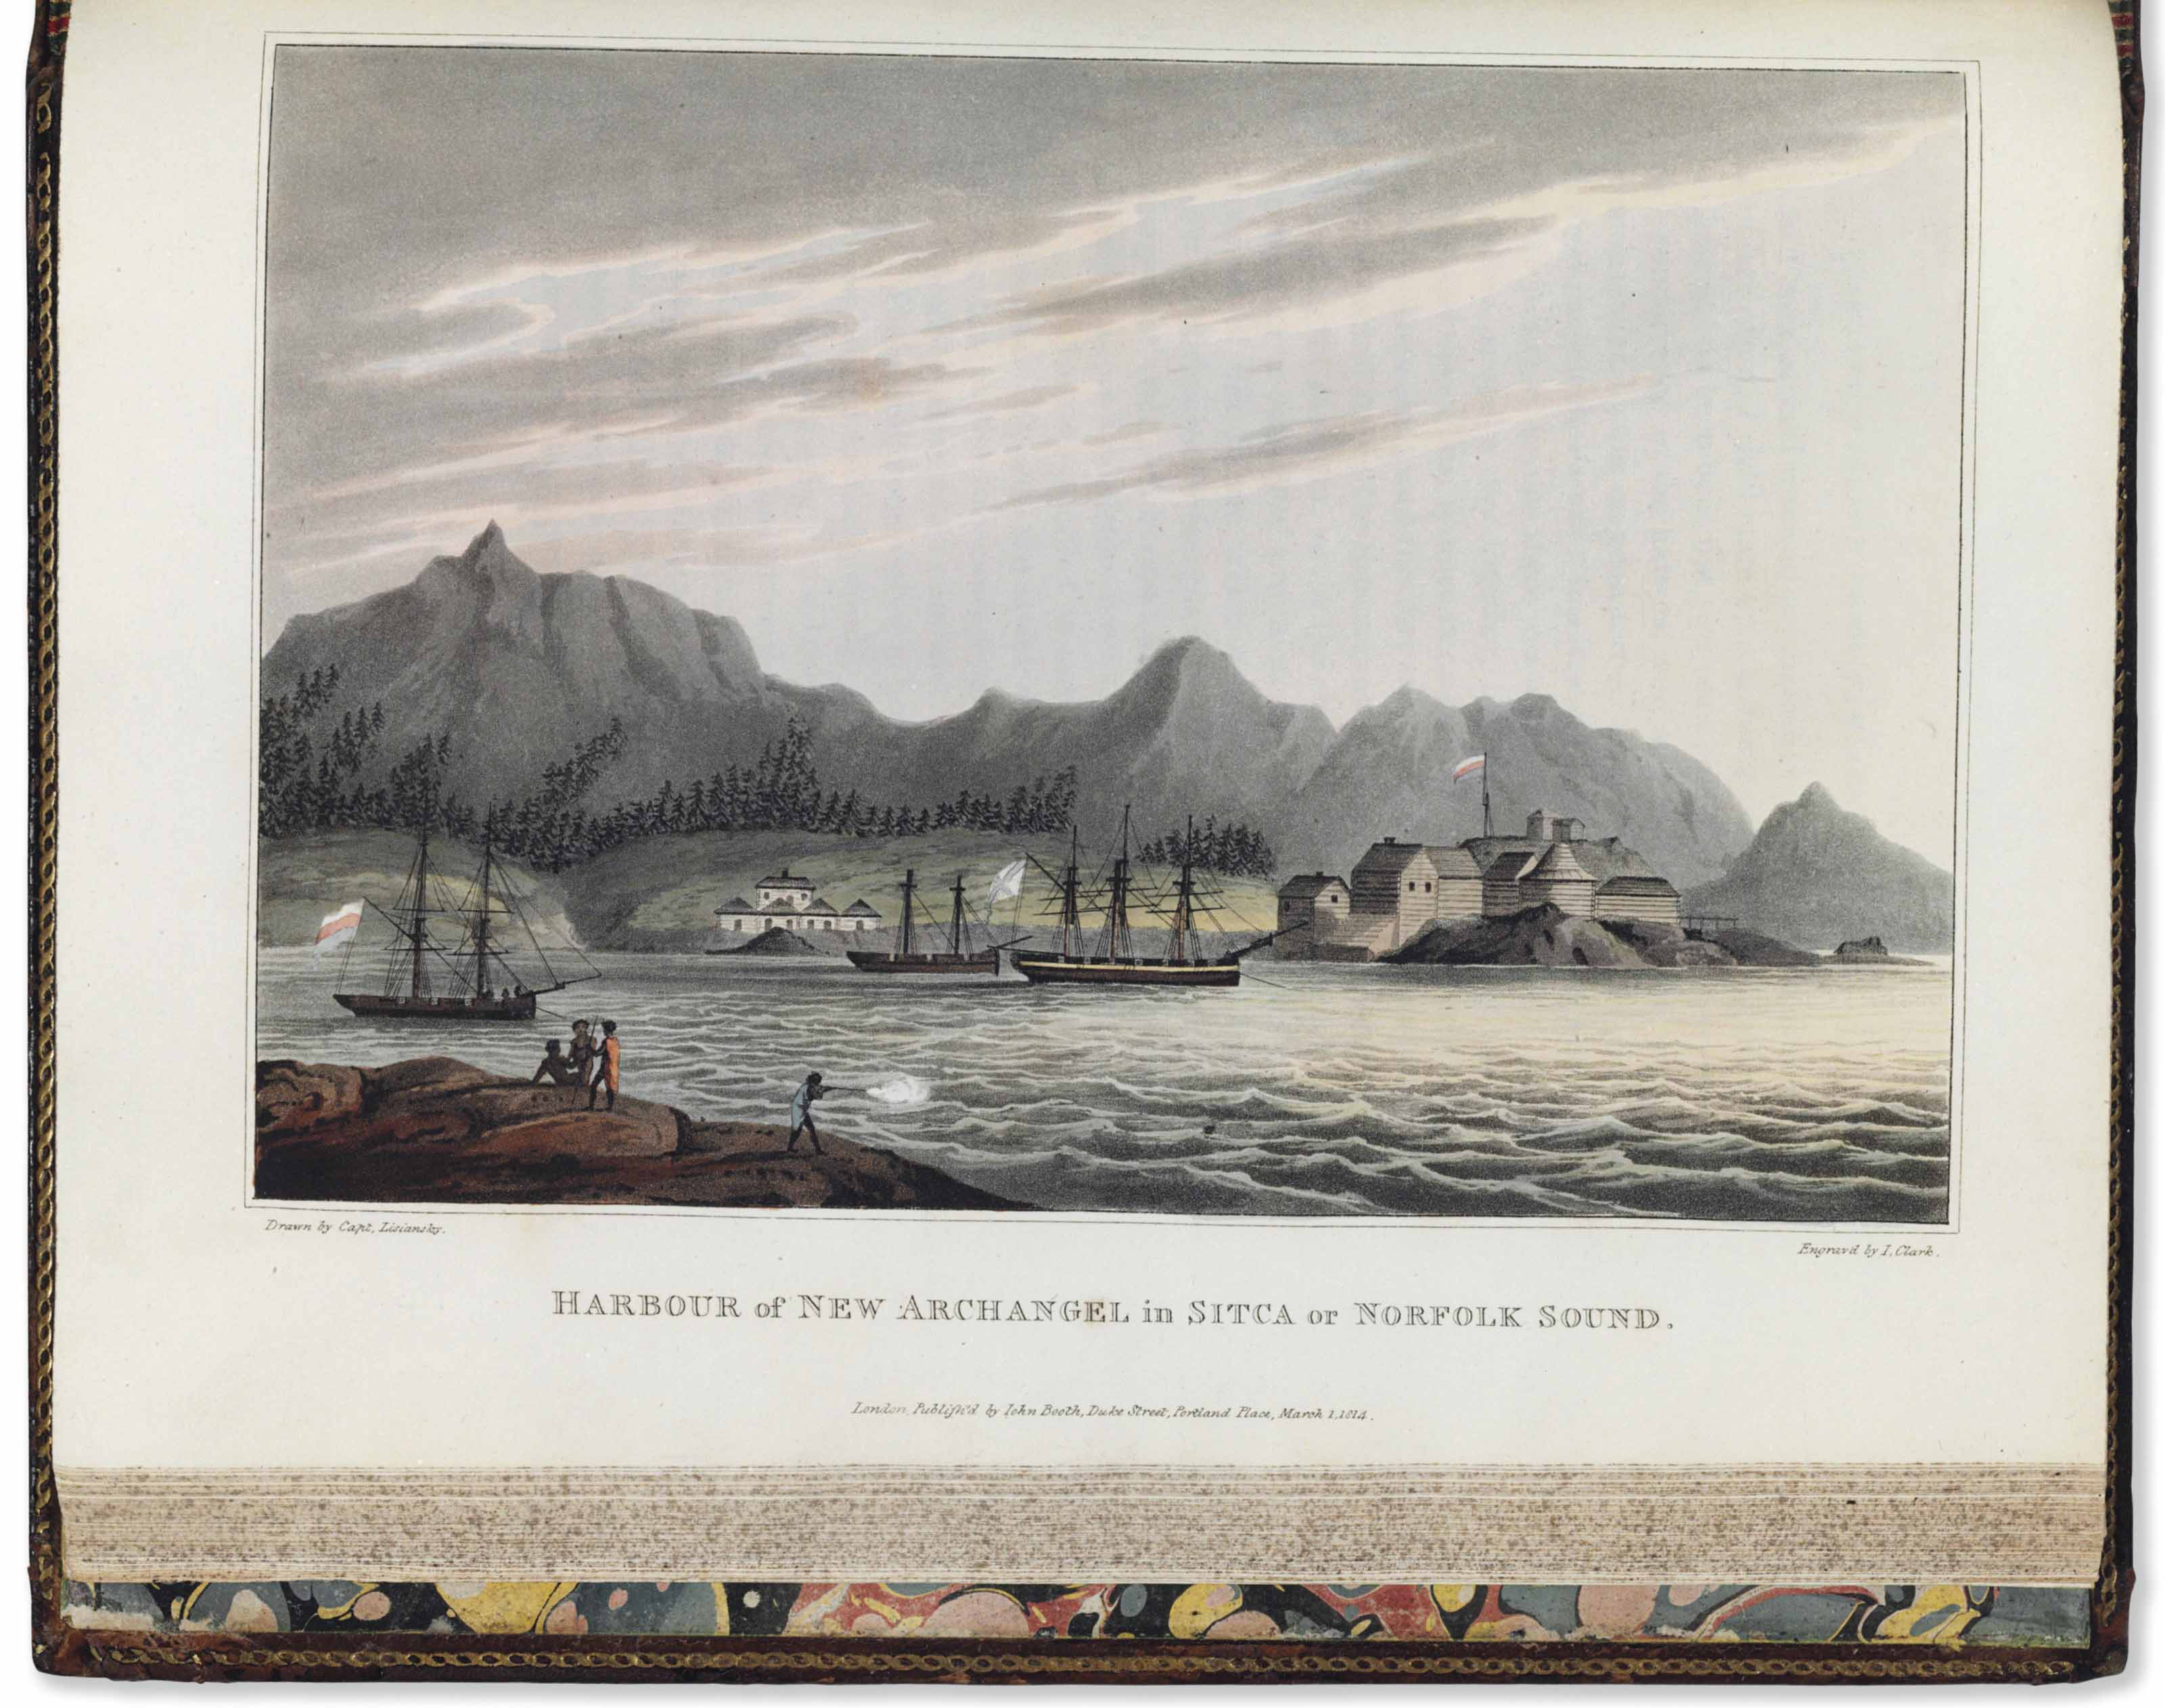 LISIANSKII, Iurii Fedorovich (1773-1837). A Voyage Round the World, in the years 1803, 4, 5, & 6; performed, by order of His Imperial Majesty Alexander the First, Emperor of Russia, in the Ship Neva. London: S. Hamilton for John Booth and Longman, Hurst, Rees, Orme, and Brown, 1814.